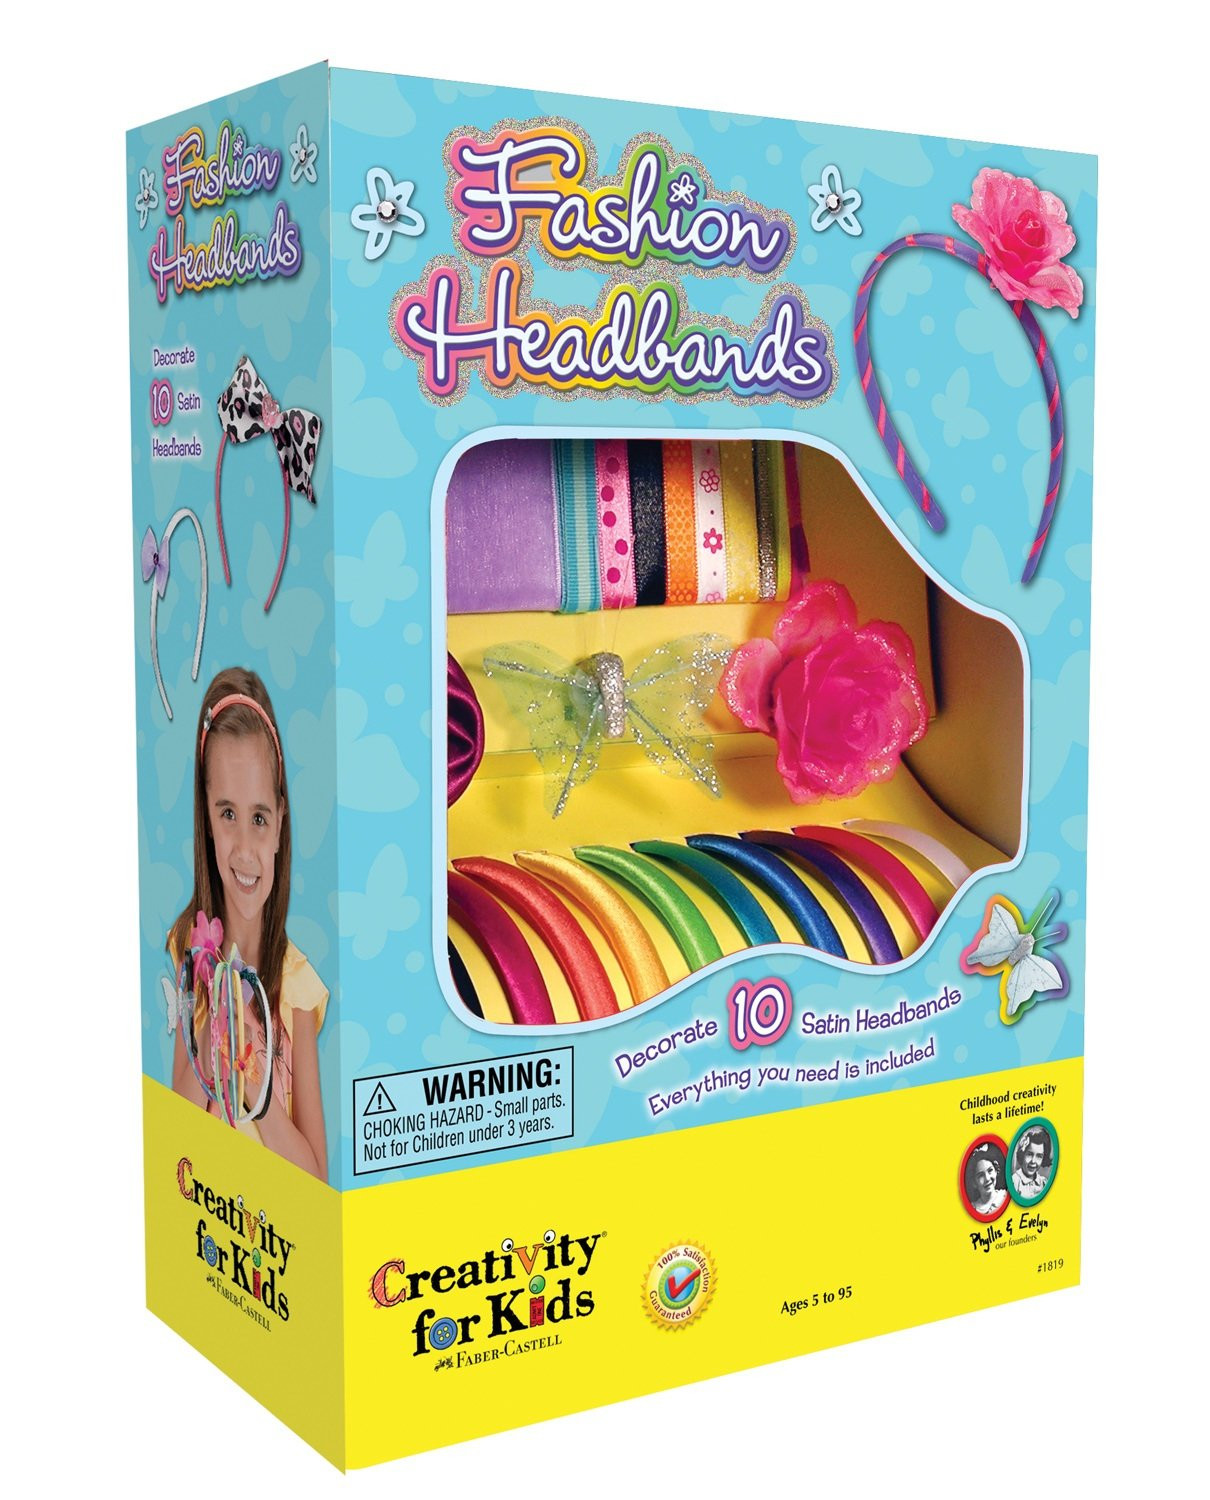 Best Toys Gifts For 6 Year Old Girls : Best gifts for year old girls in itsy bitsy fun